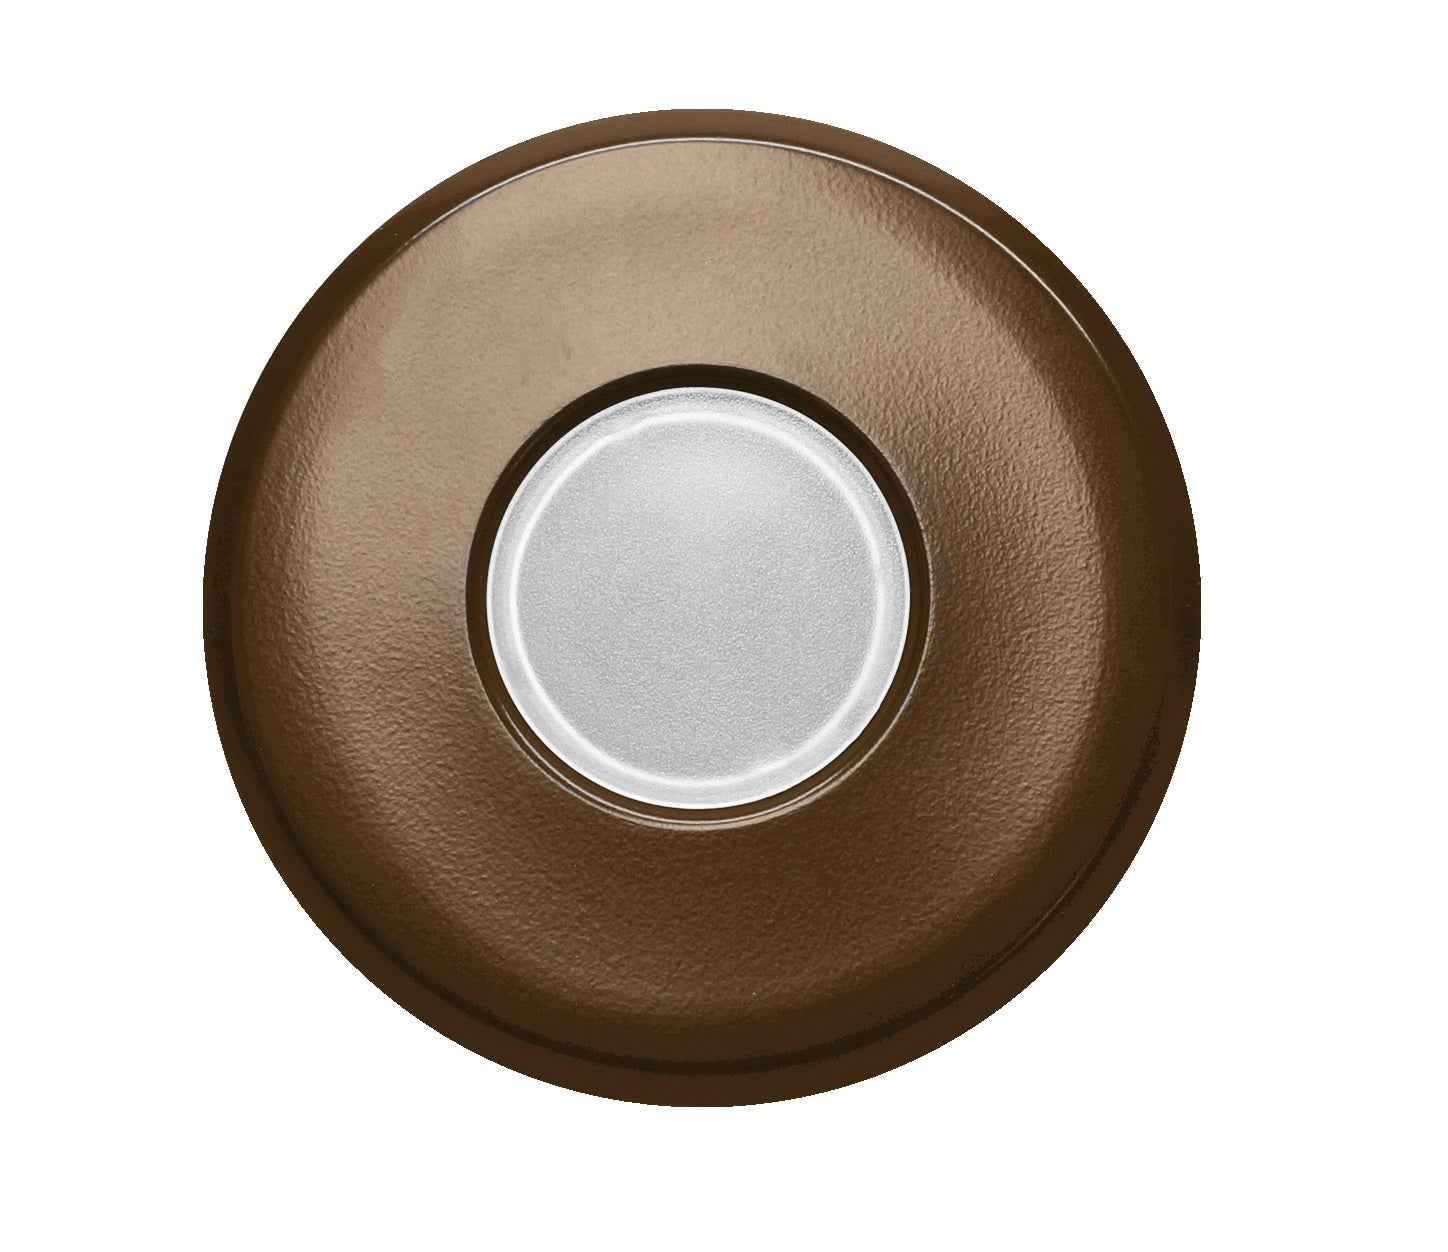 SureFit 5.25 in. Round Ultra Slim Surface Mount LED Downlight in Oil-Rubbed Bronze, 4000K